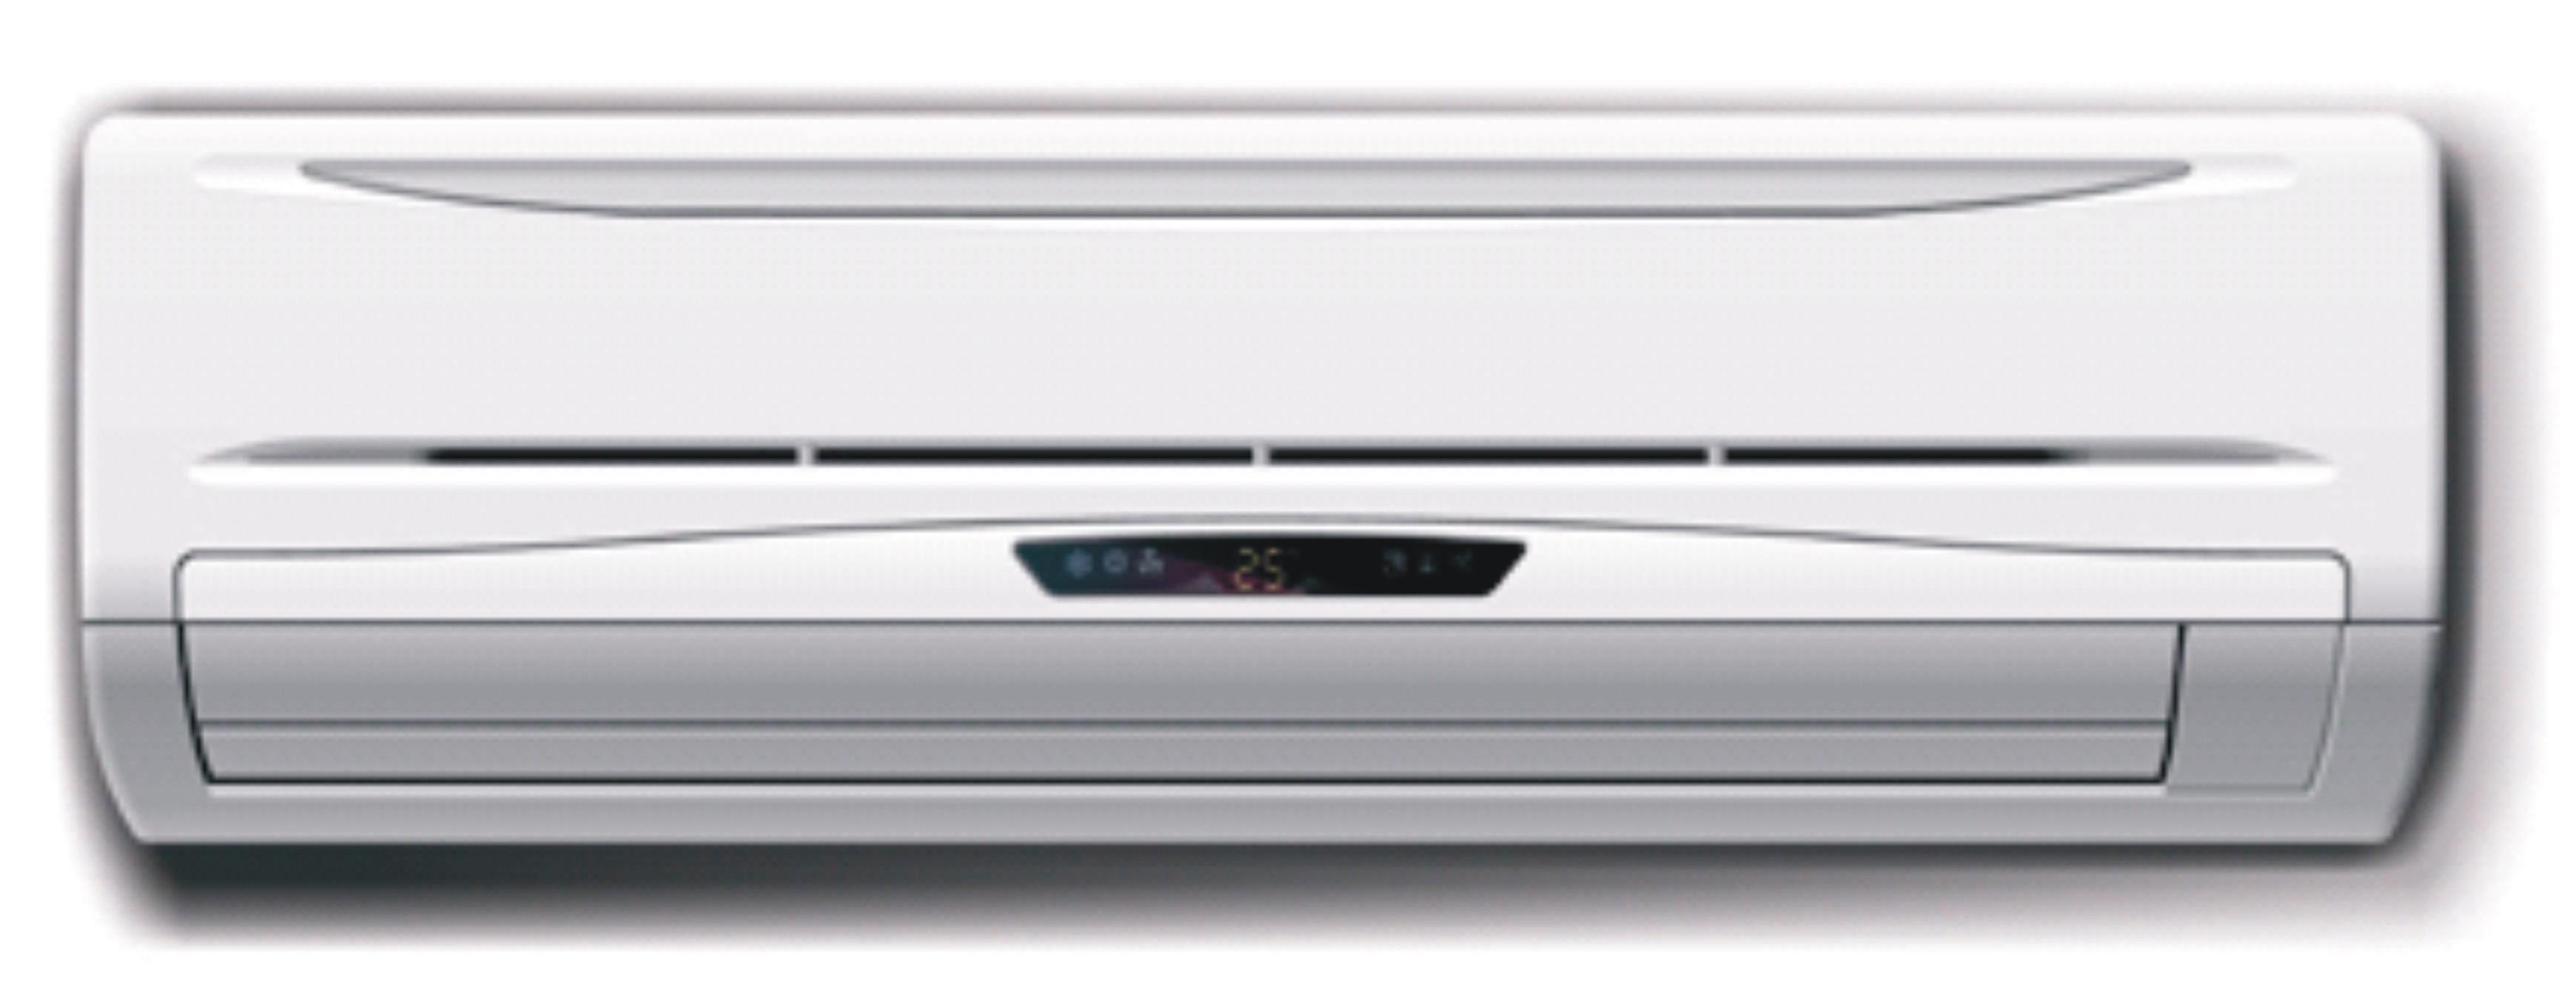 Central Air Conditioner: Which Central Air Should You Buy? #5F4A4D